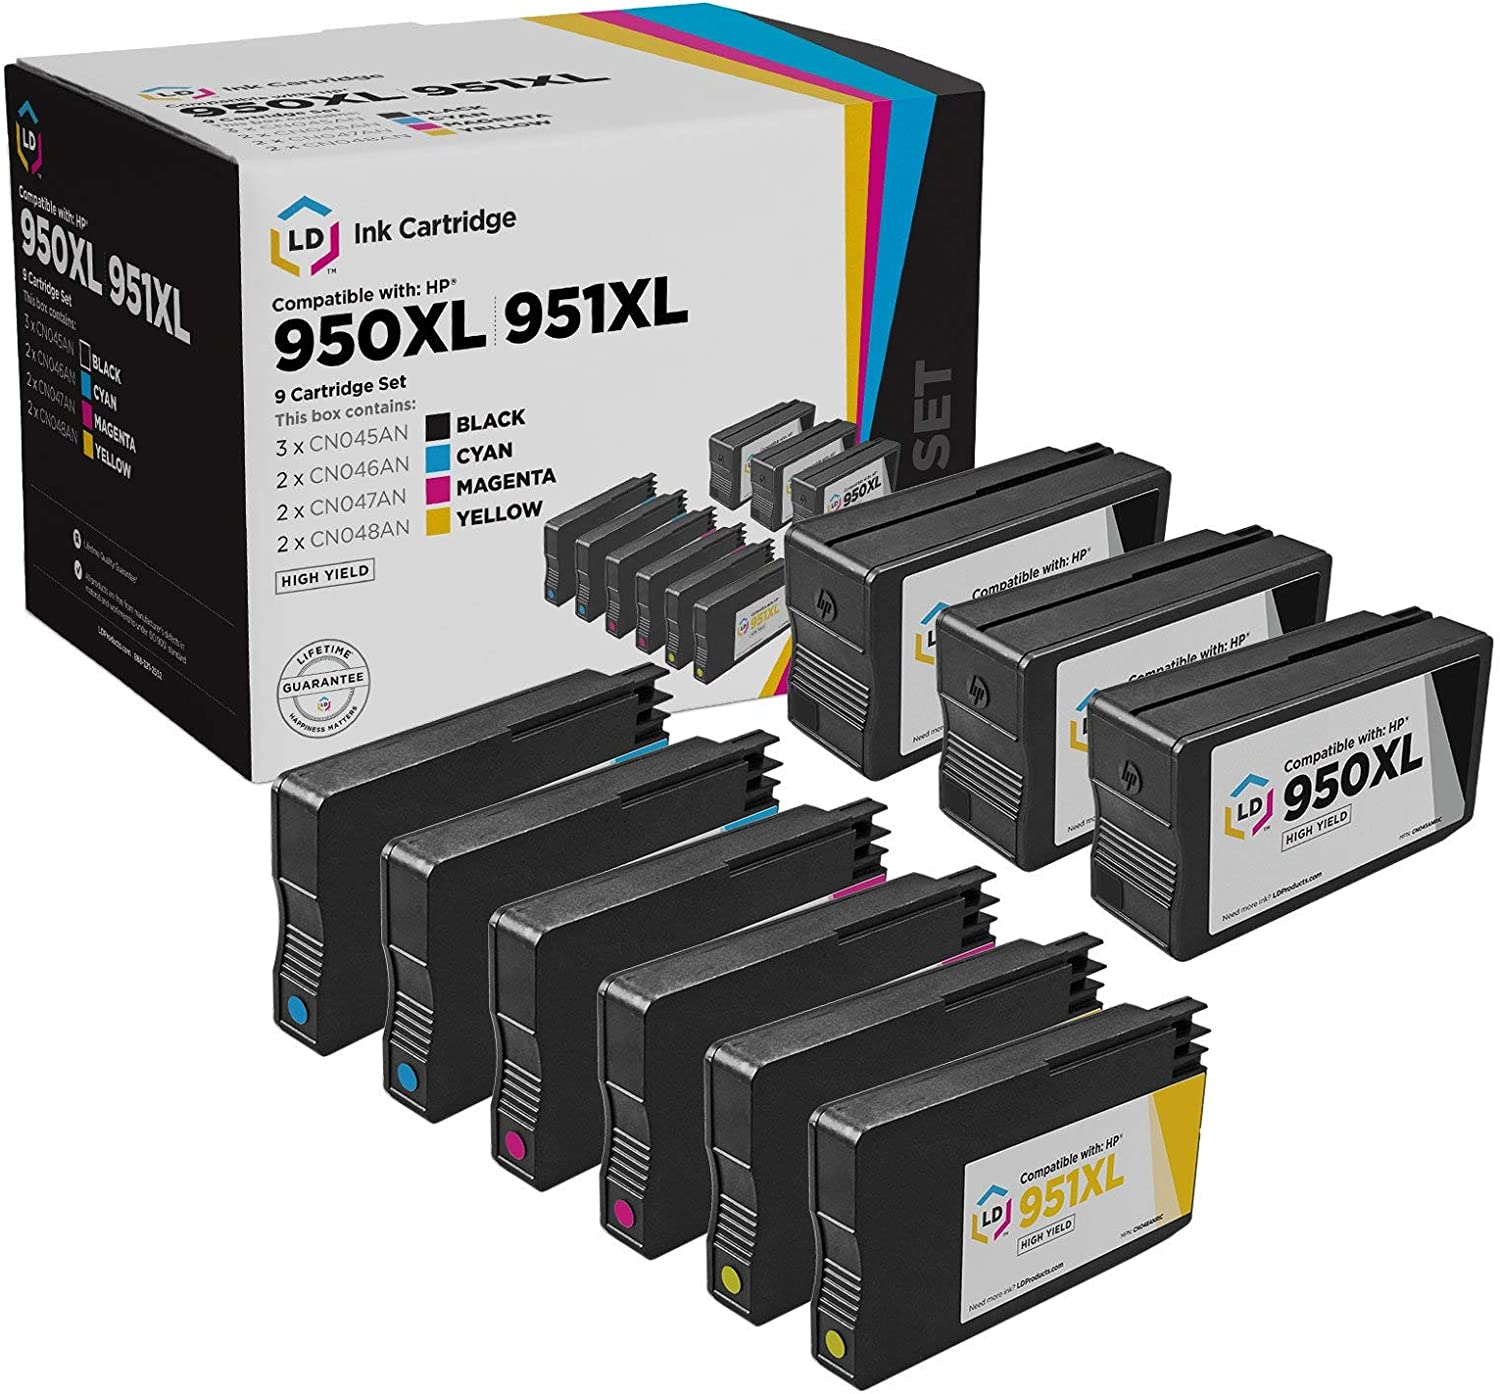 LD Remanufactured Ink Cartridge Replacements for HP 950XL & 951XL High Yield (3 Black, 2 Cyan, 2 Magenta, 2 Yellow, 9-Pack)